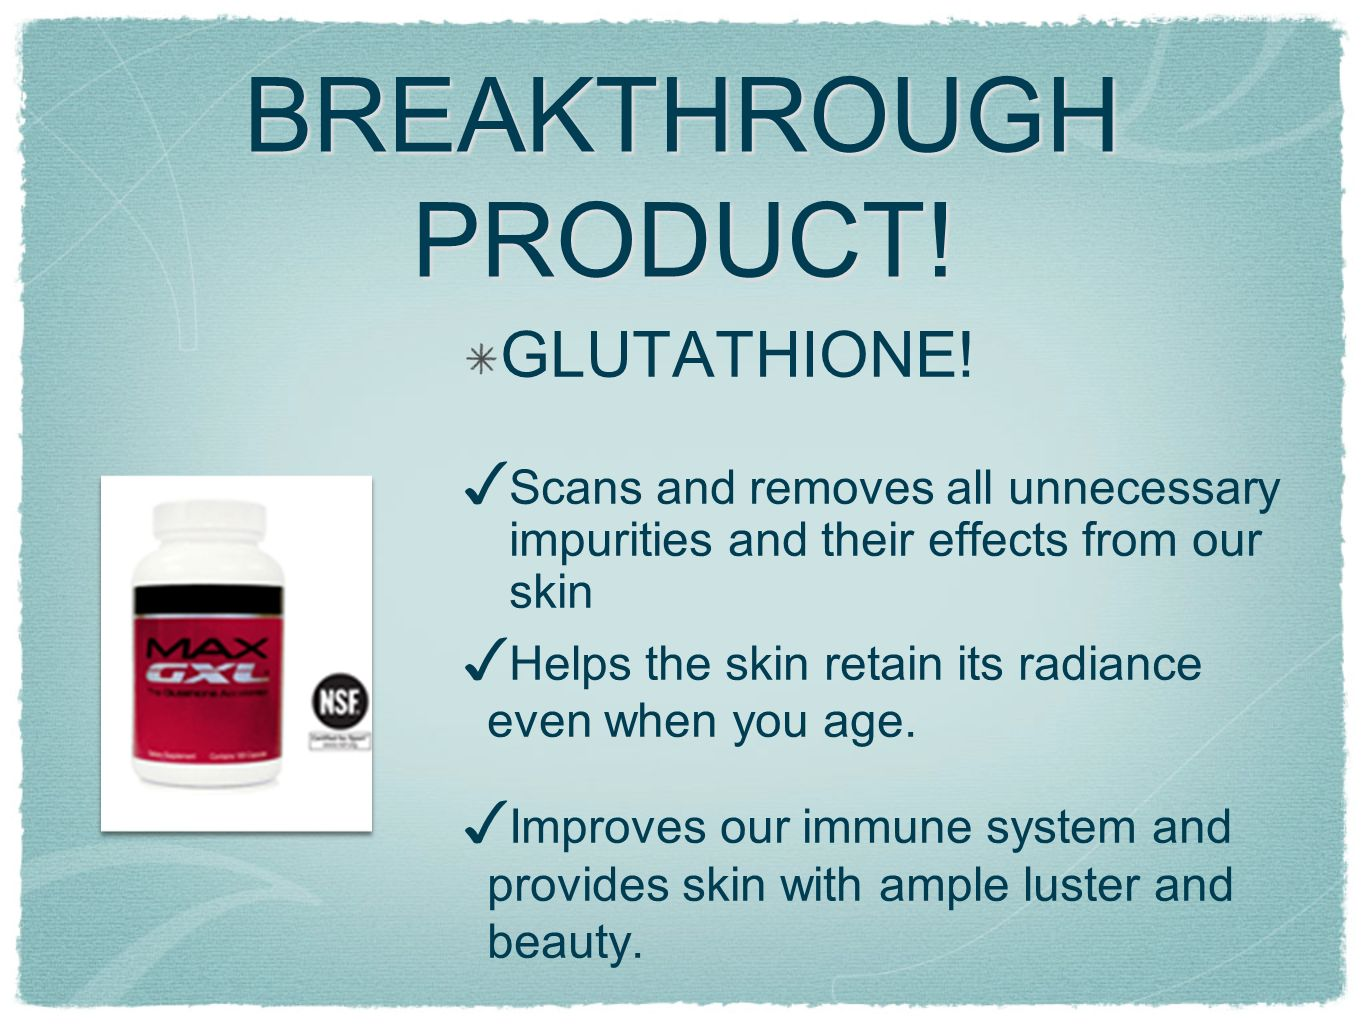 BREAKTHROUGH PRODUCT! GLUTATHIONE!